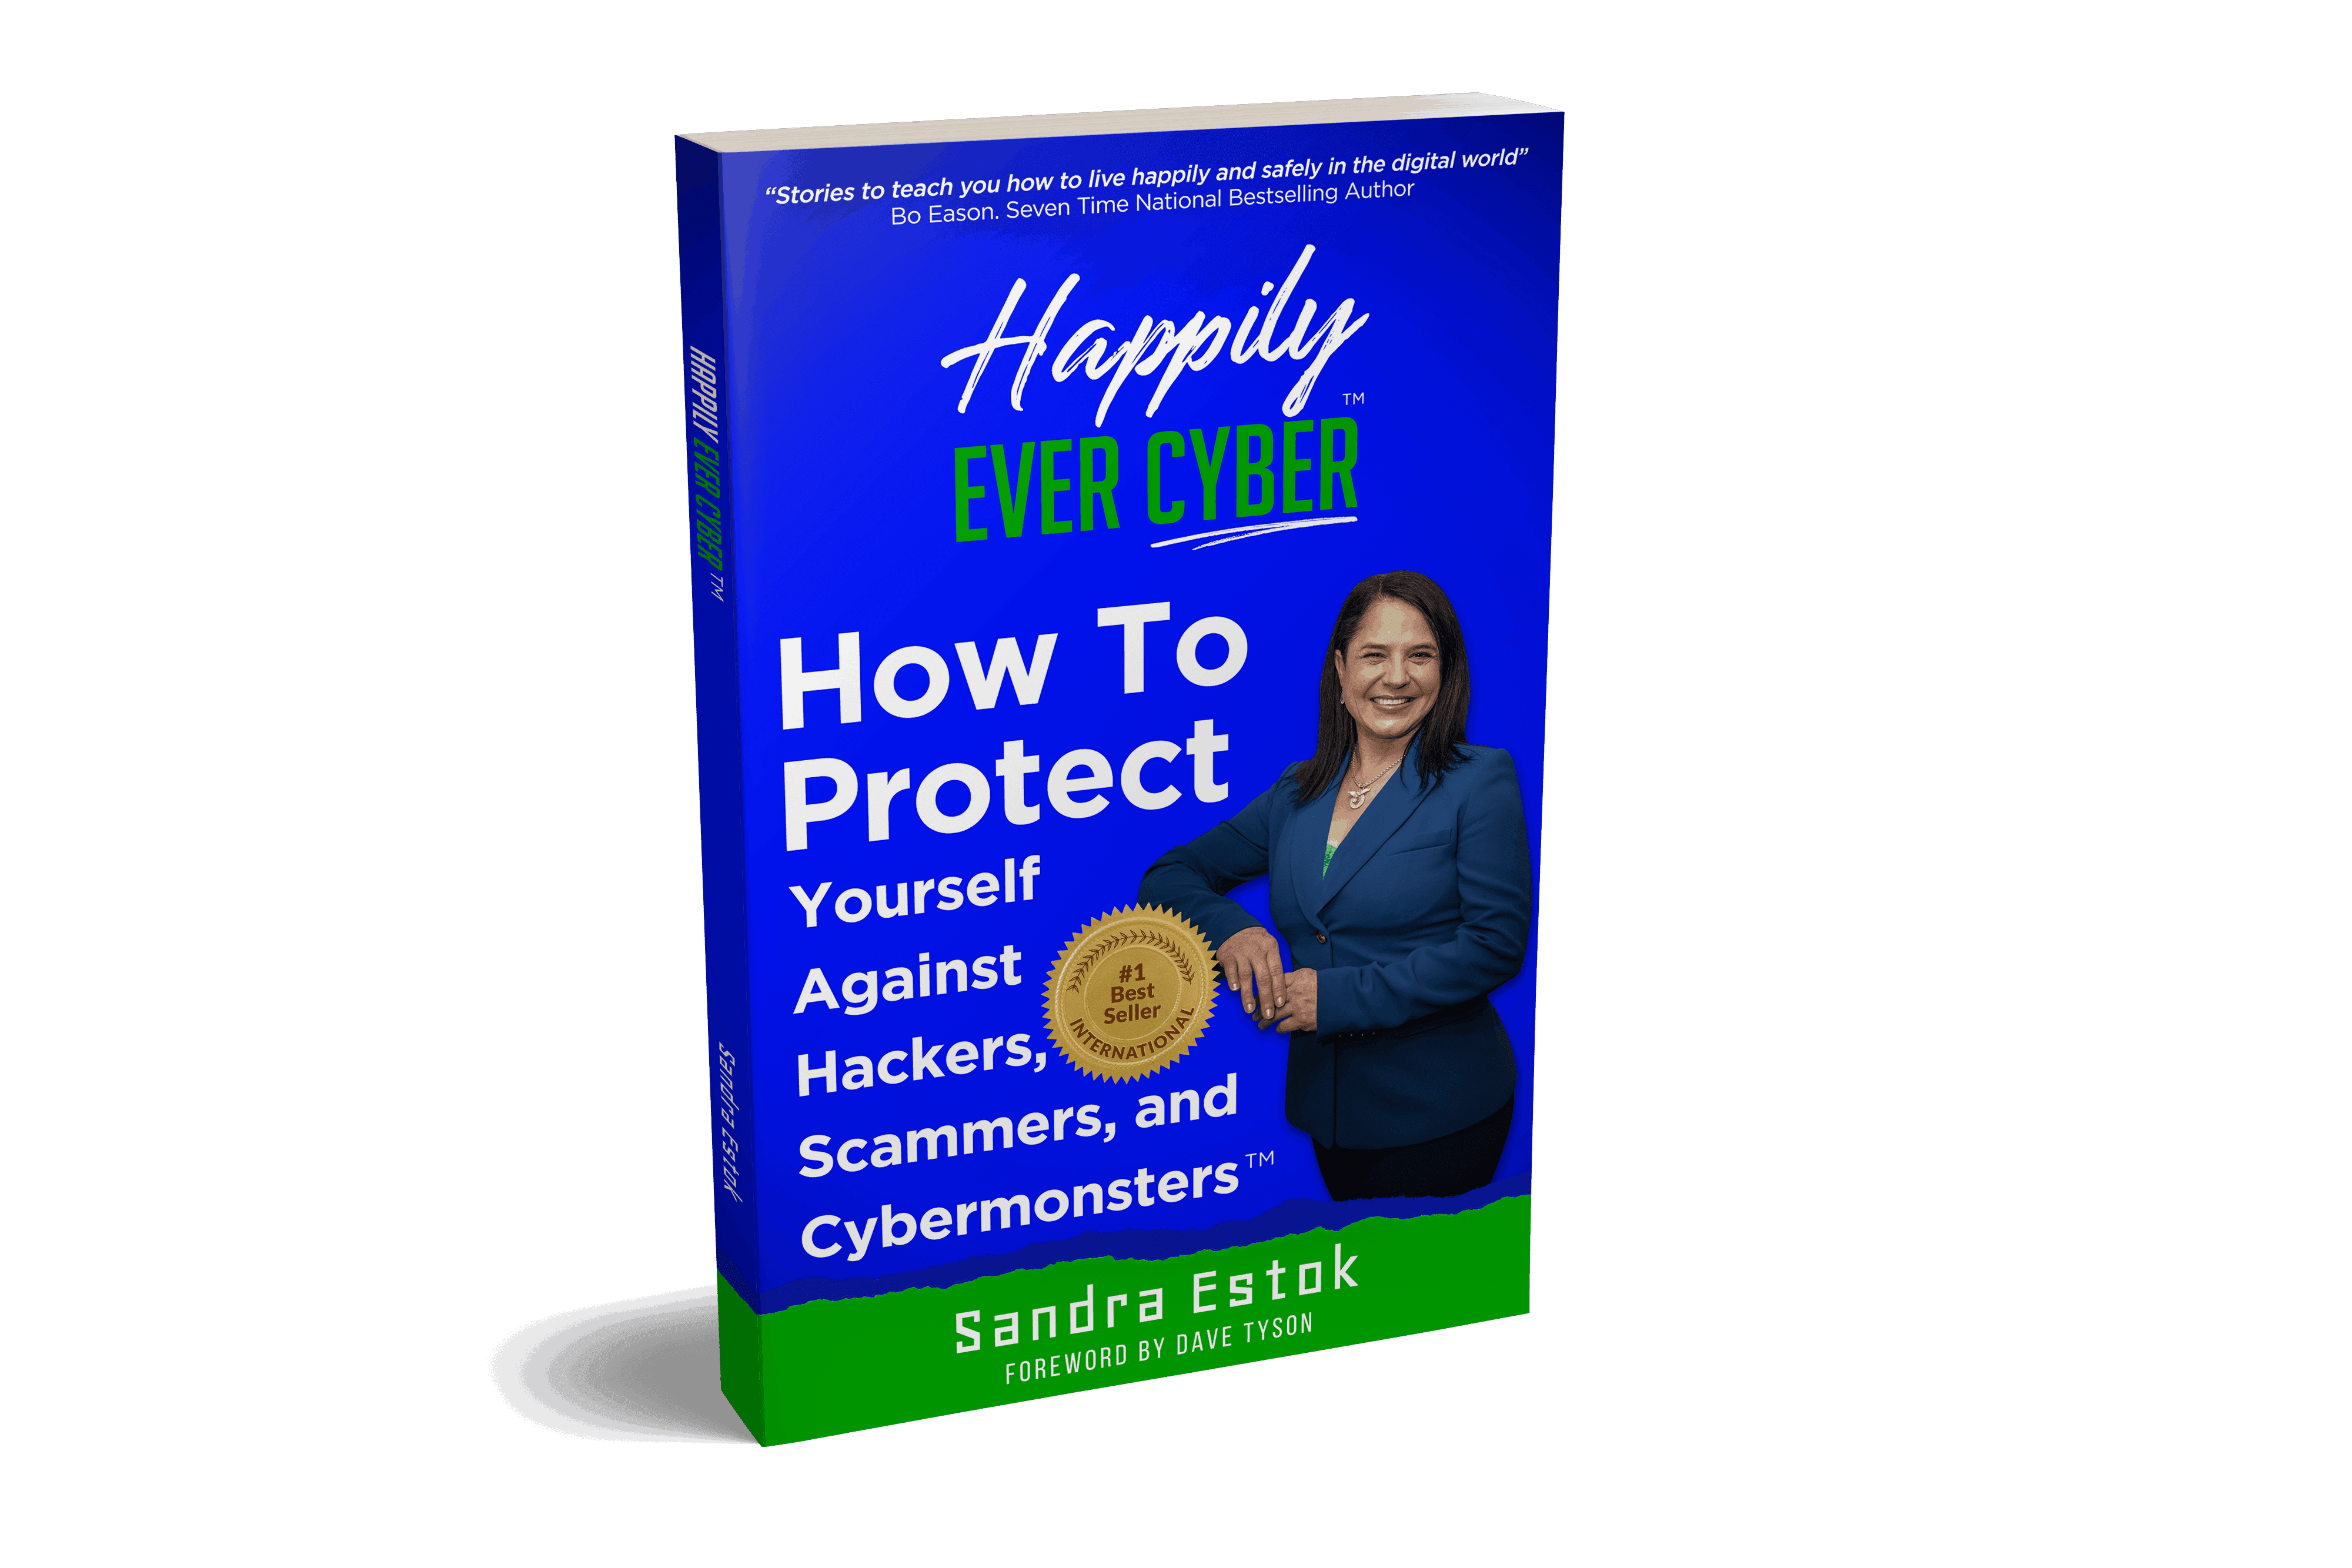 How To Protect Your Computer and Phone Against Hackers, Scammers, and Cybermonsters - Sandra Estok, CEO and Founder of Way2Protect